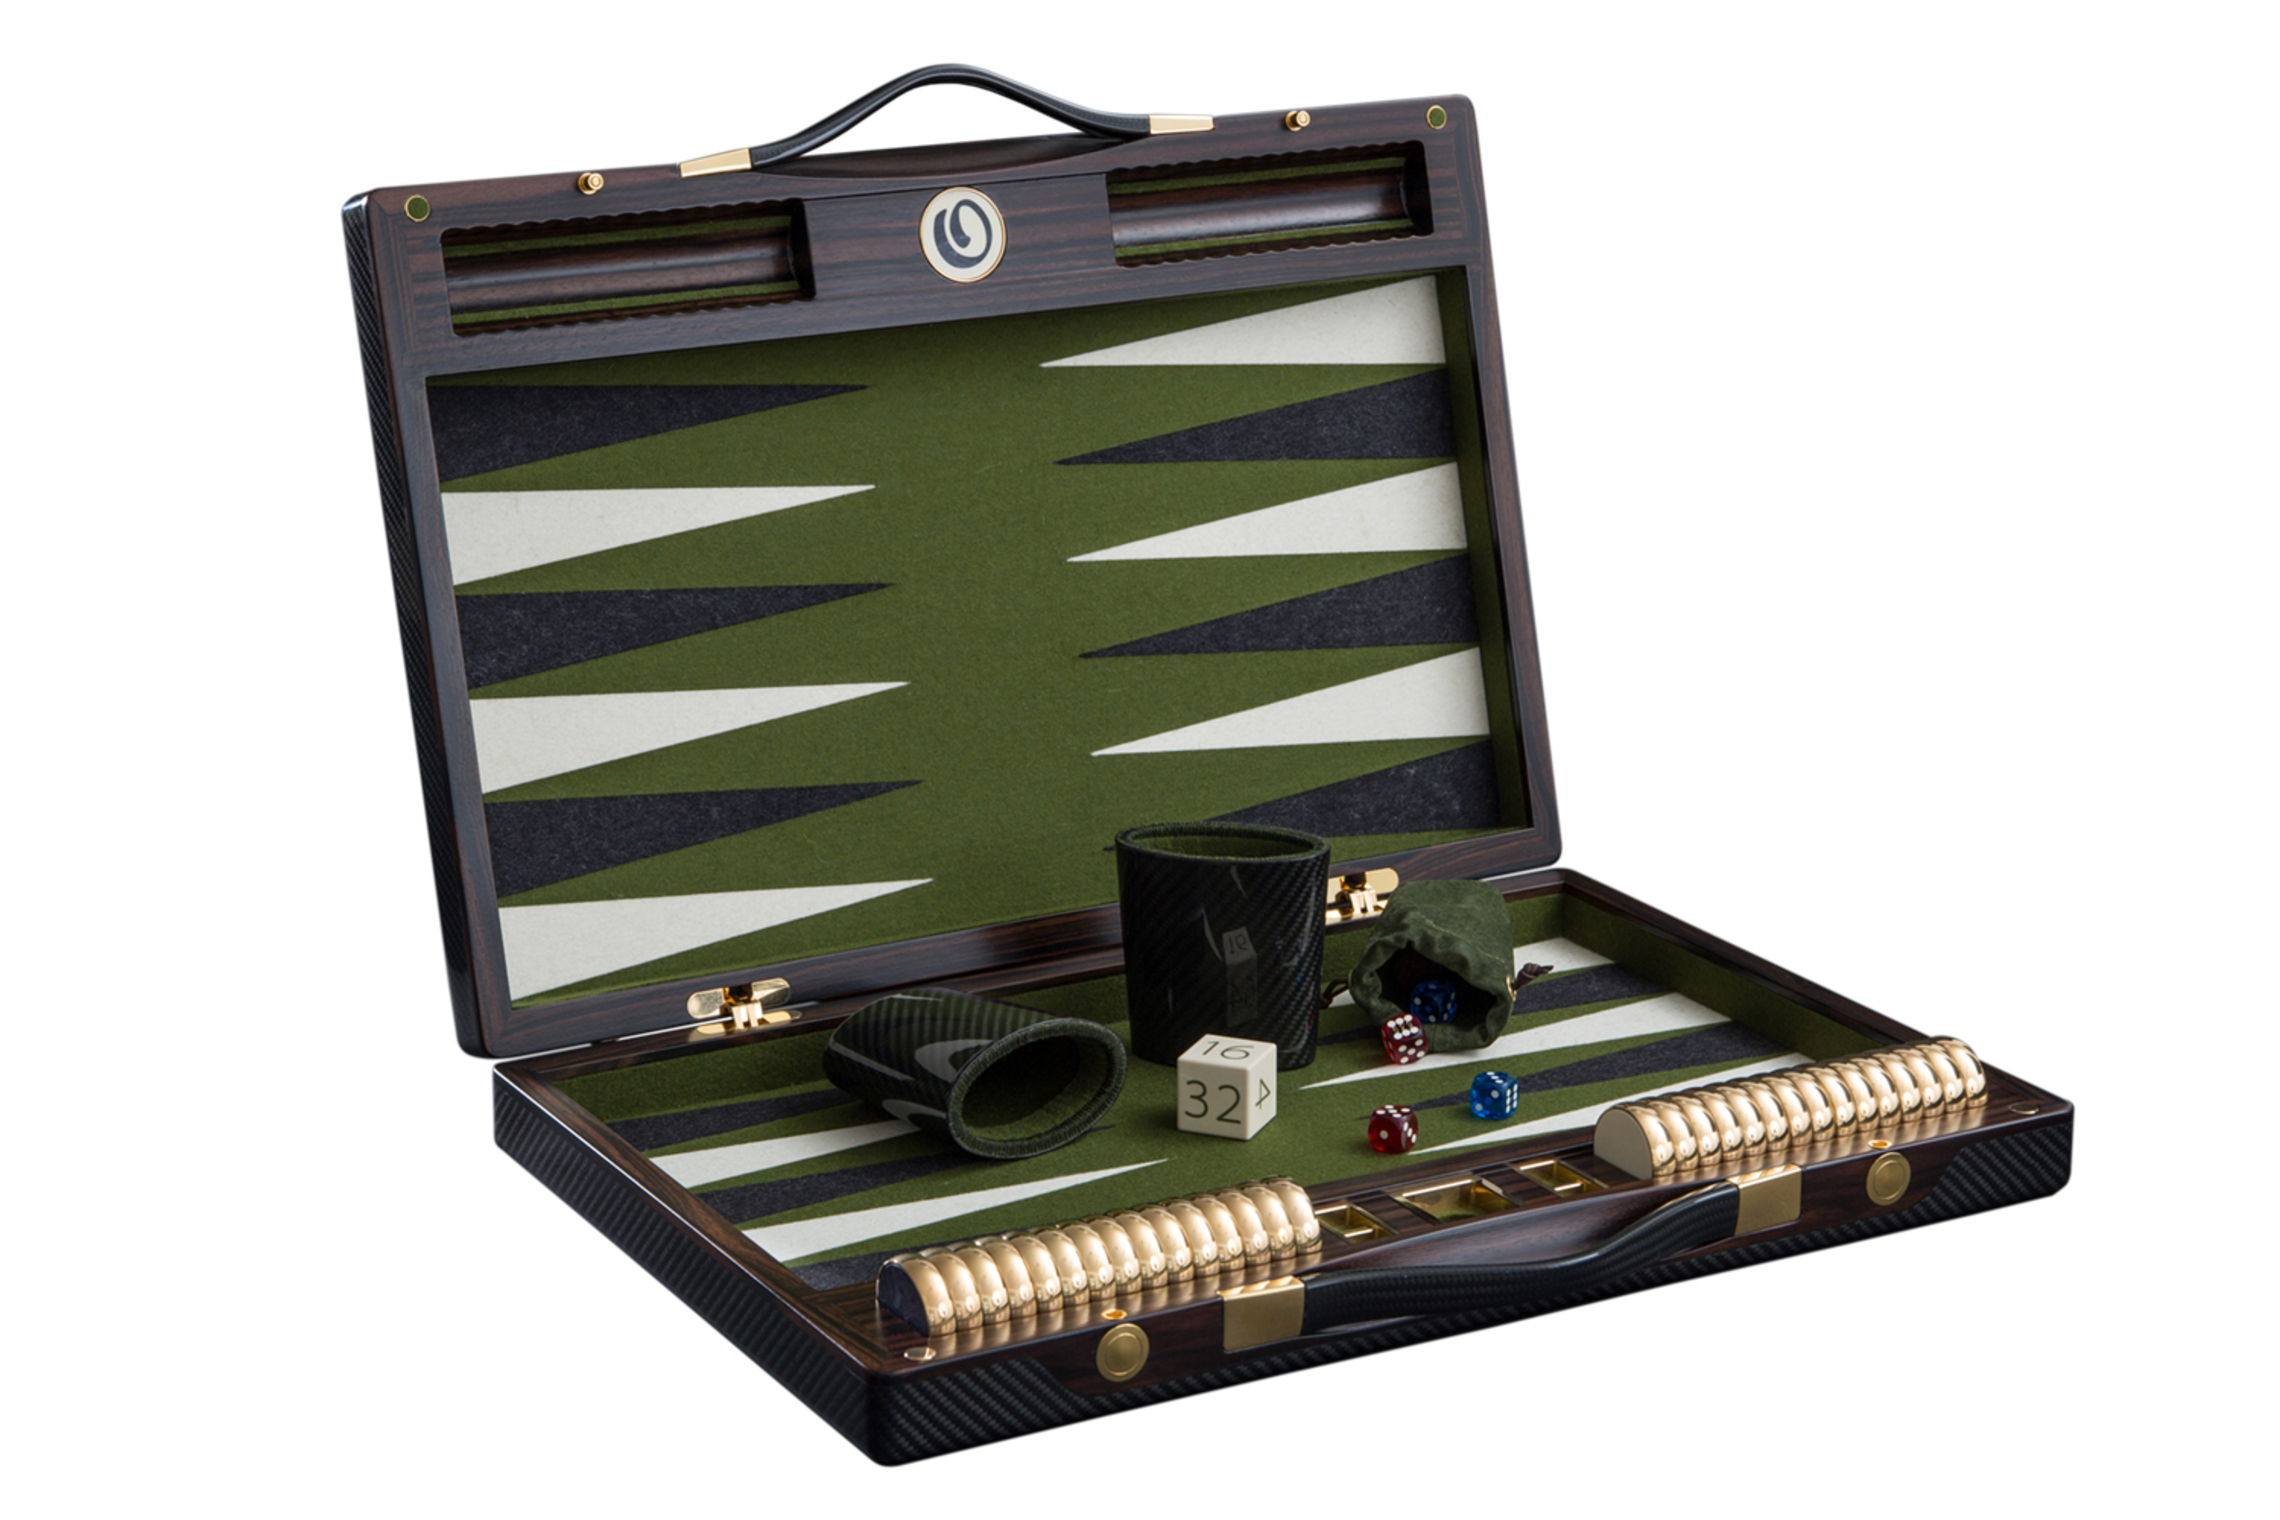 NEW  series of our luxurious Carbon-Fibre Backgammon